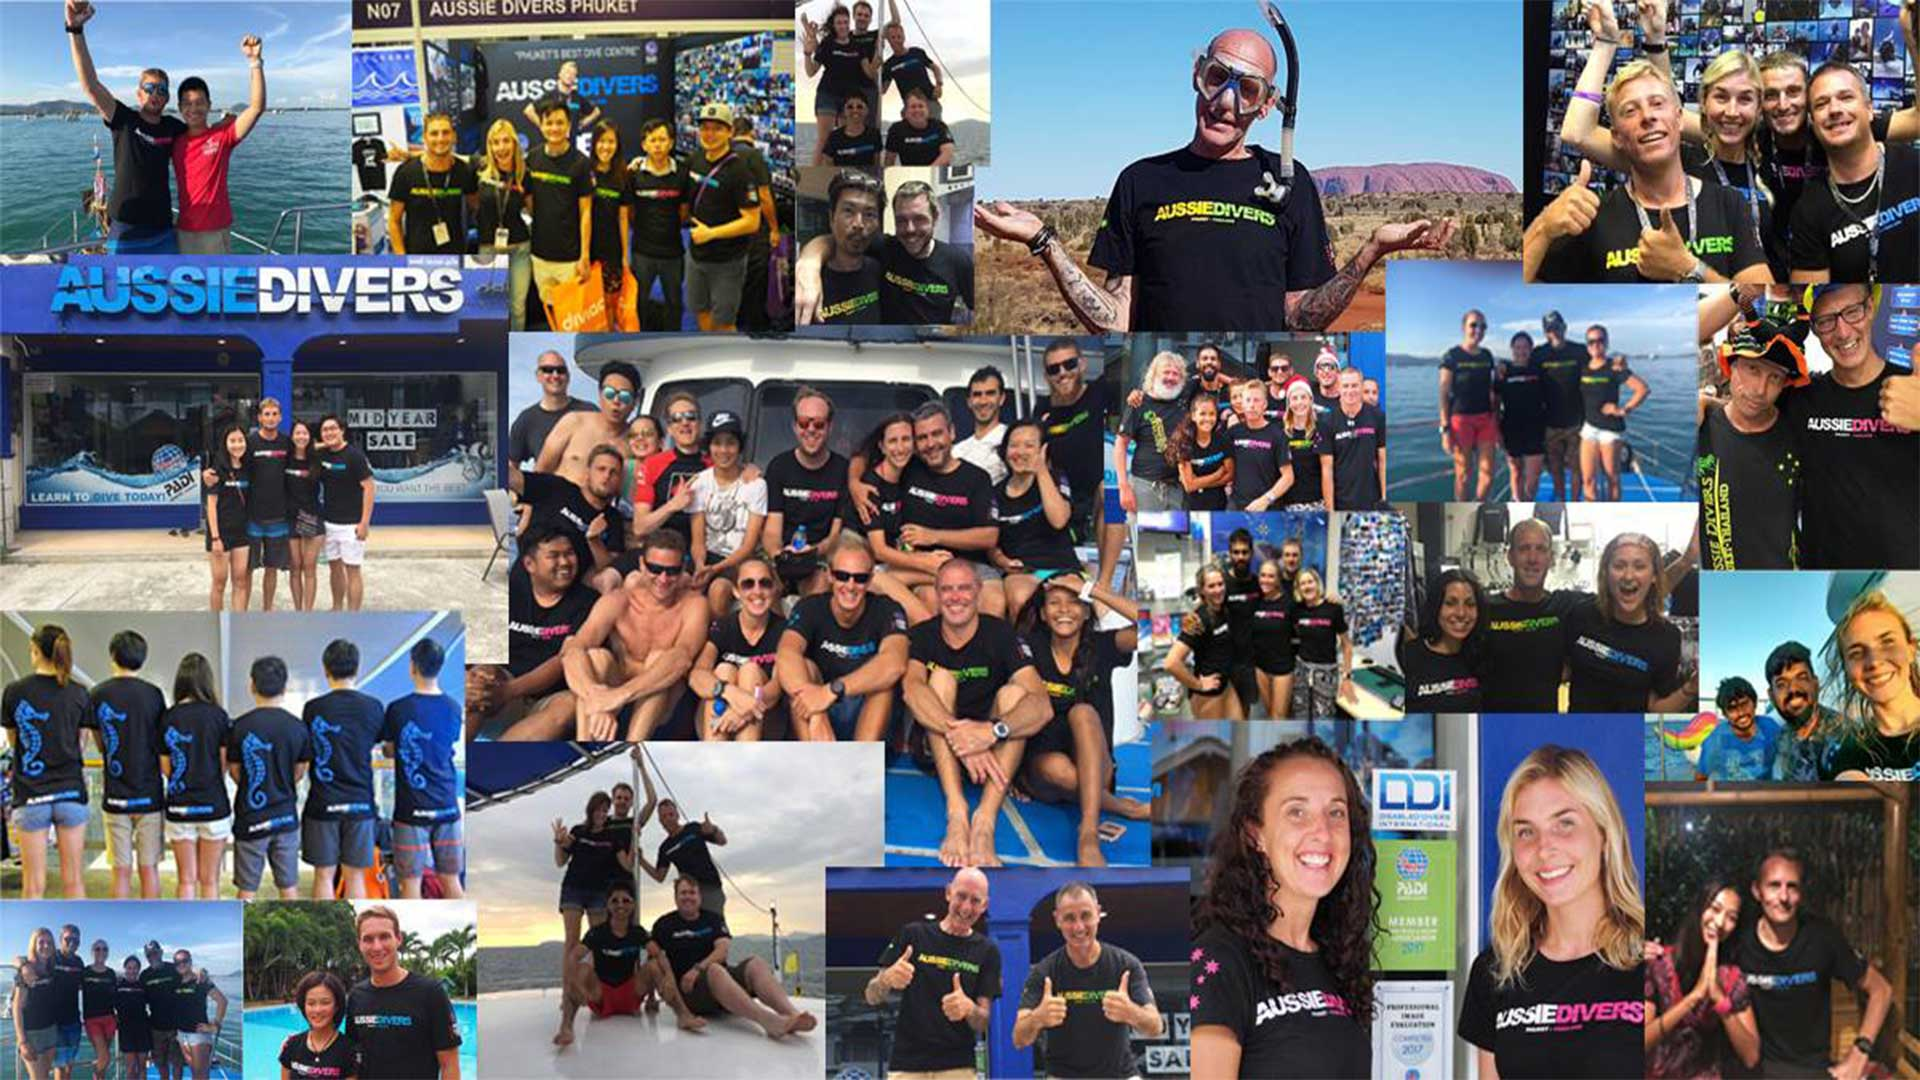 Aussie Divers Phuket – Wear Your Aussie Divers T-shirt to ADEX Singapore and Win